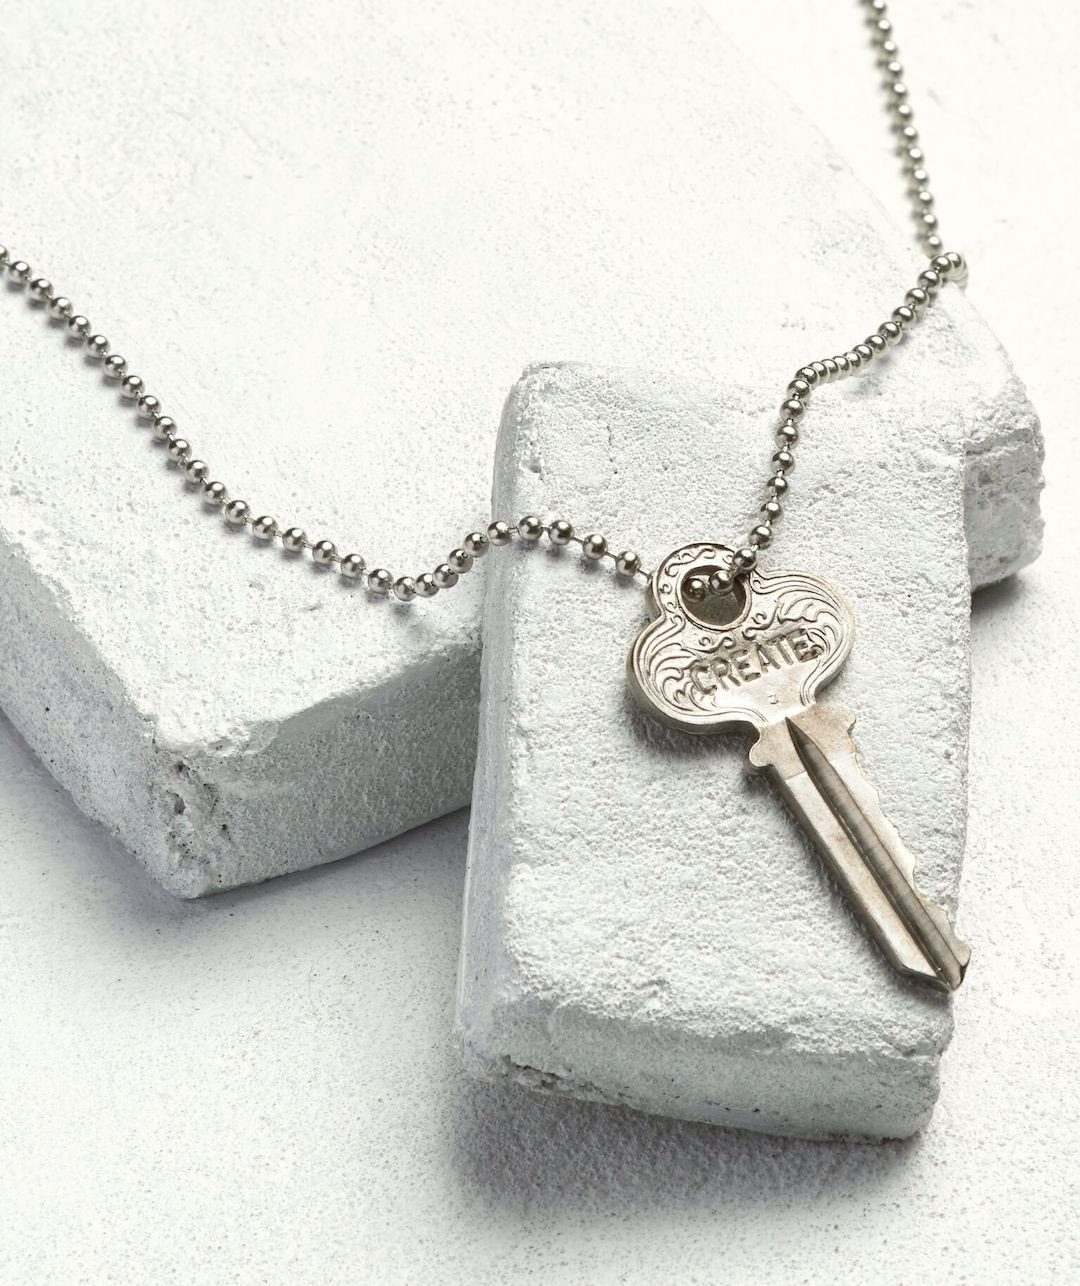 Silver Ball Chain Key Necklace Necklaces The Giving Keys CREATE Silver Ball